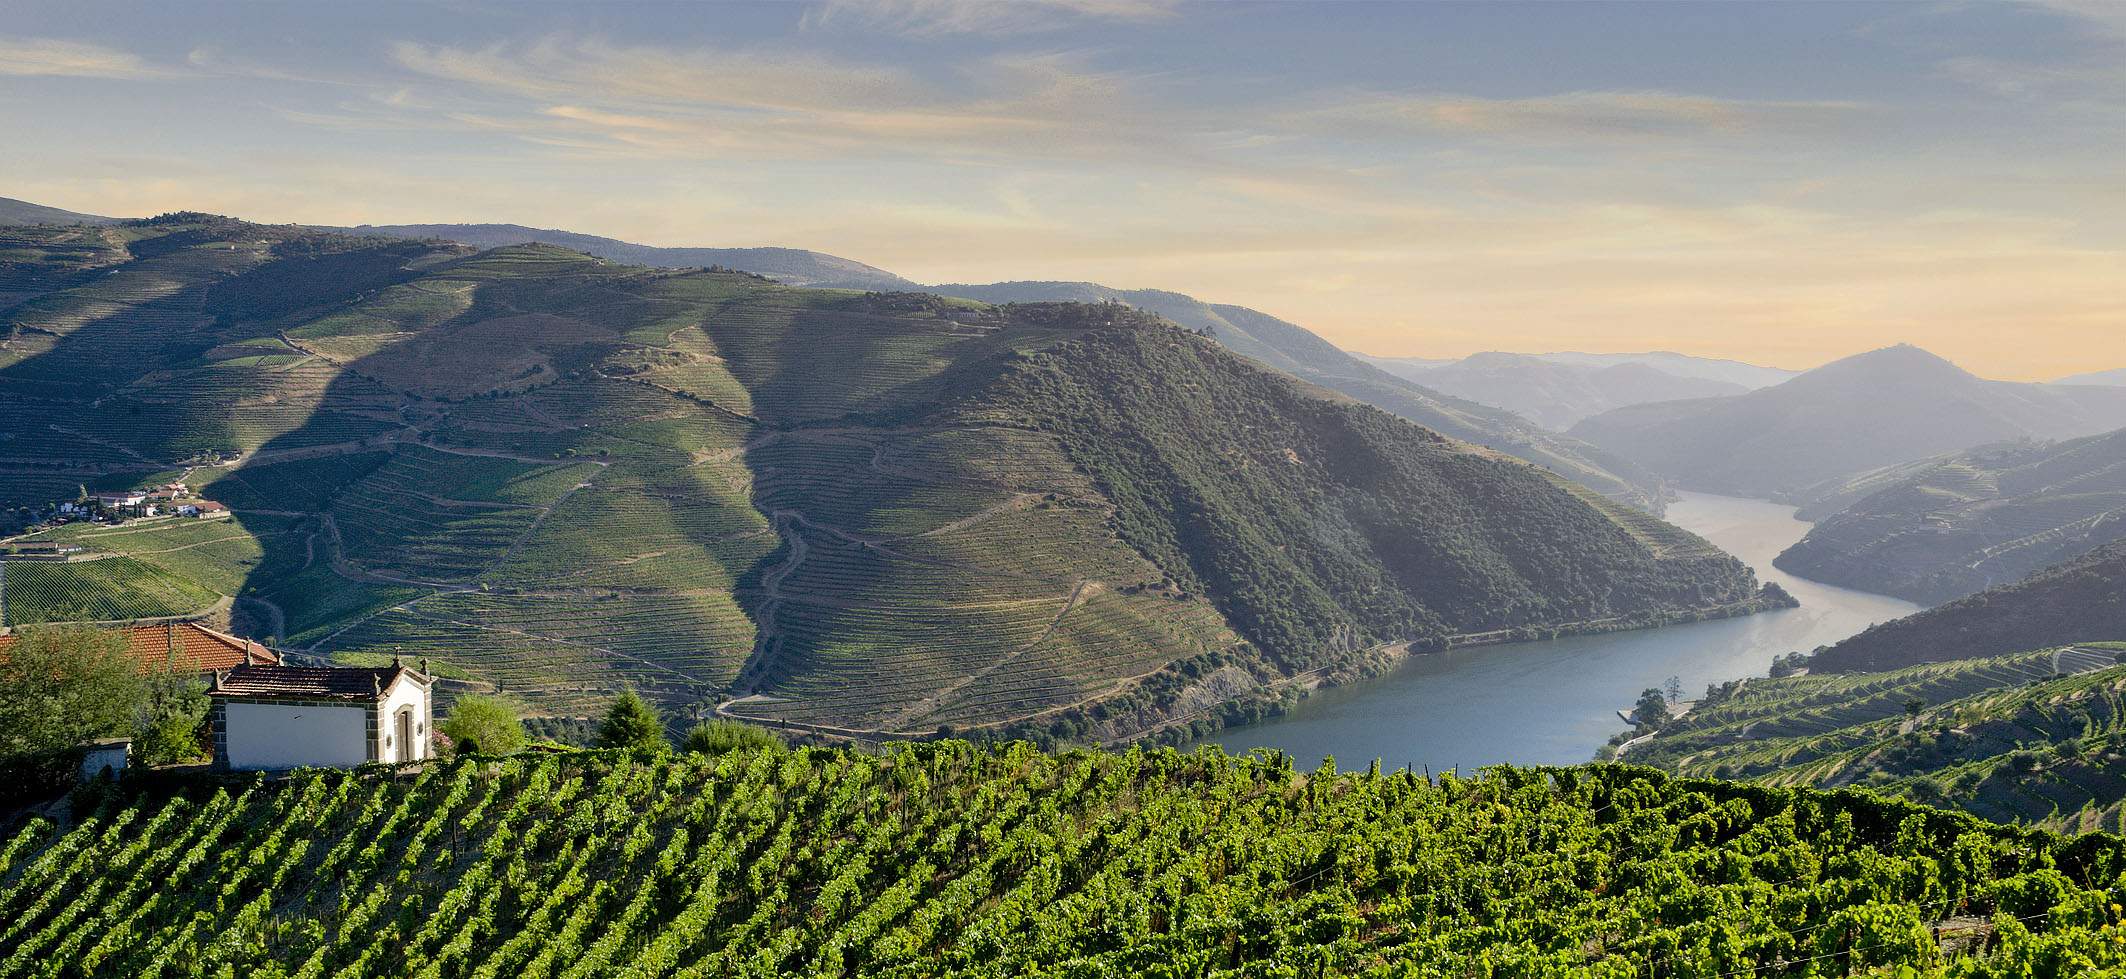 Vineyards on the Vale do Douro